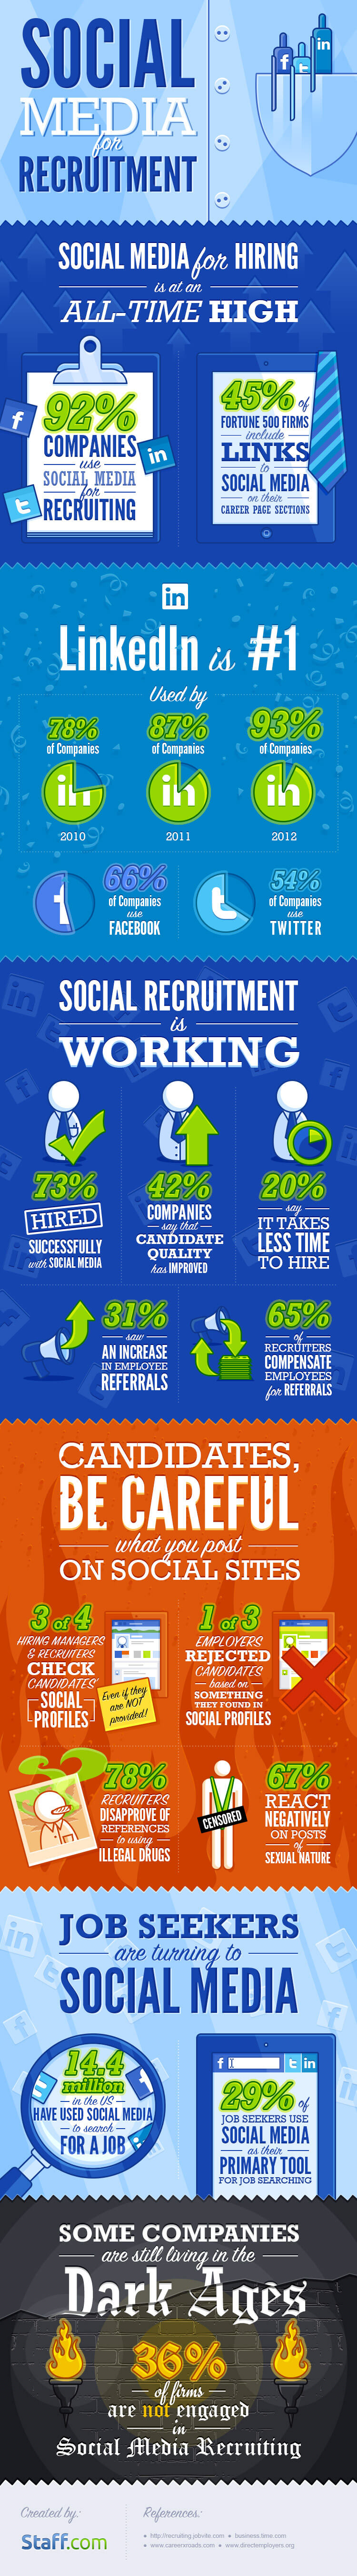 Staff-Social-media-recruitment-infographic